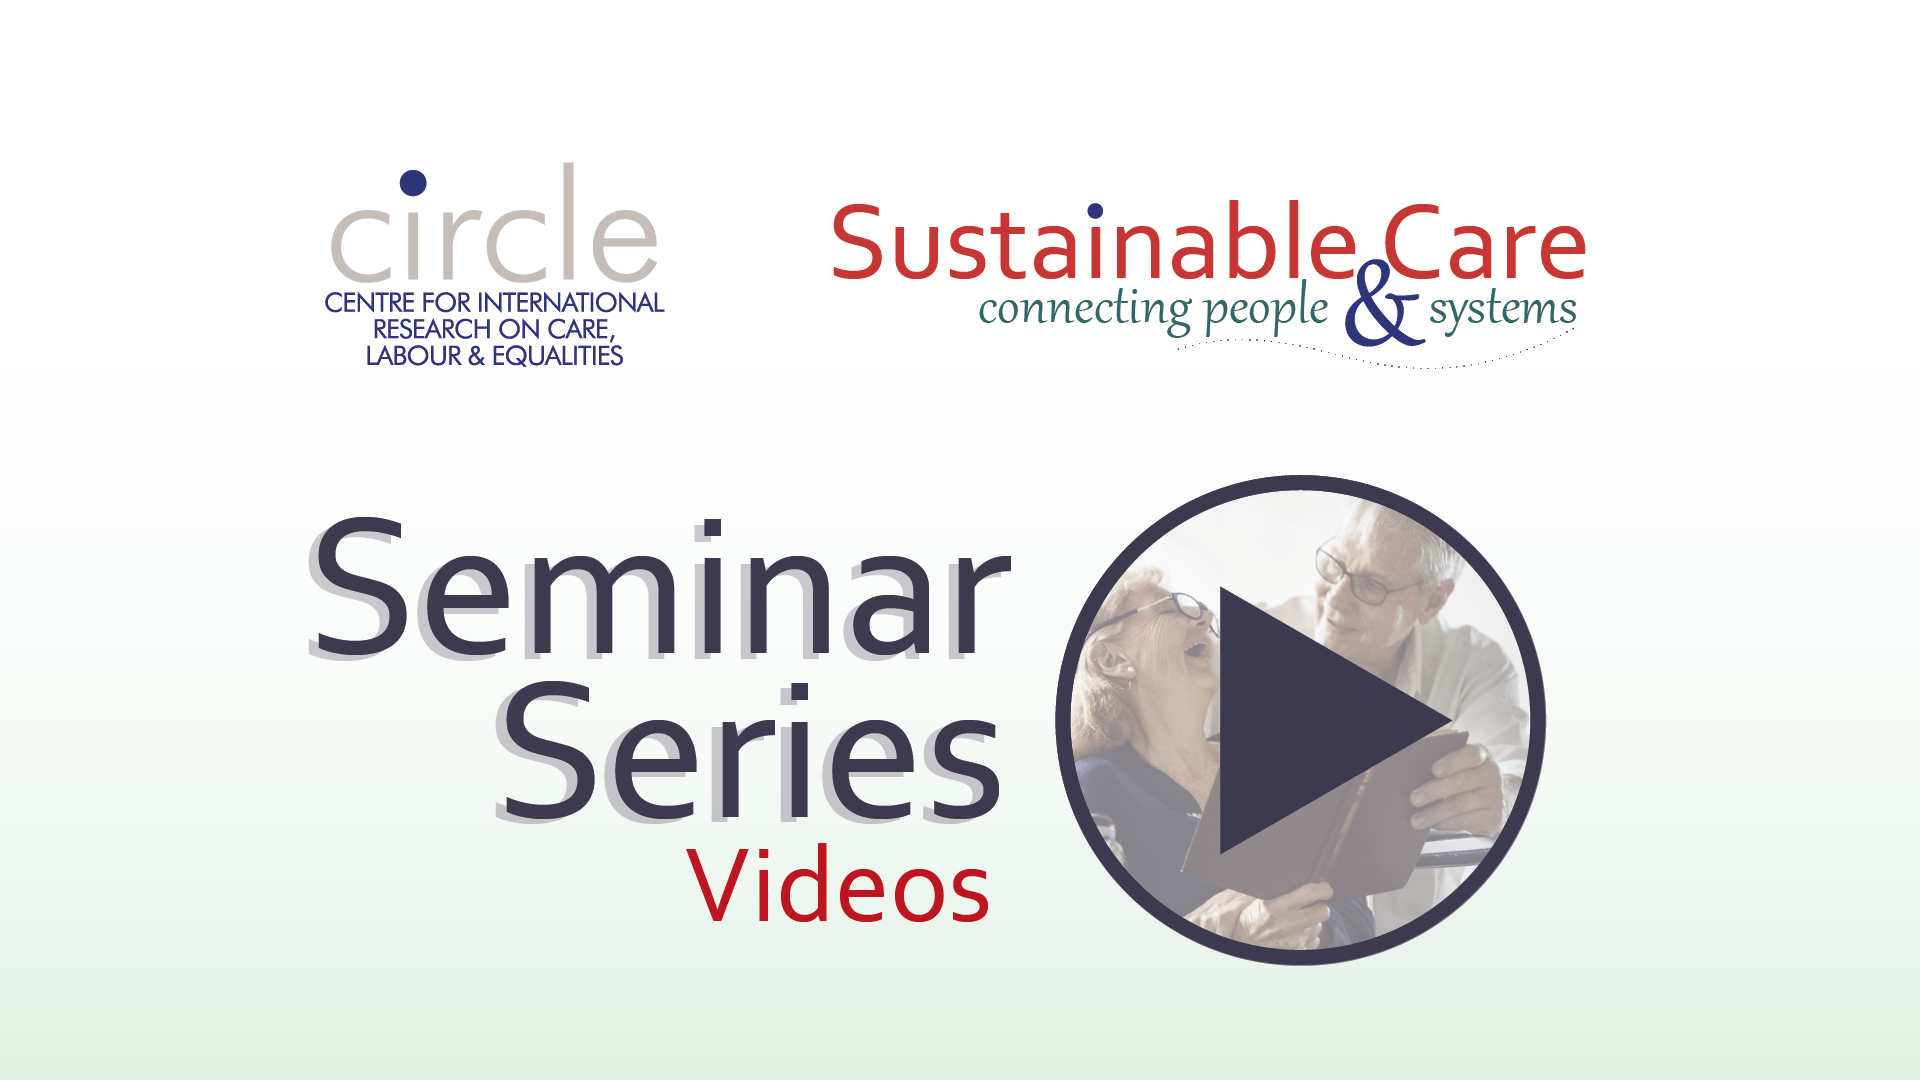 CIRCLE & Sustainable Care Seminar Series videos